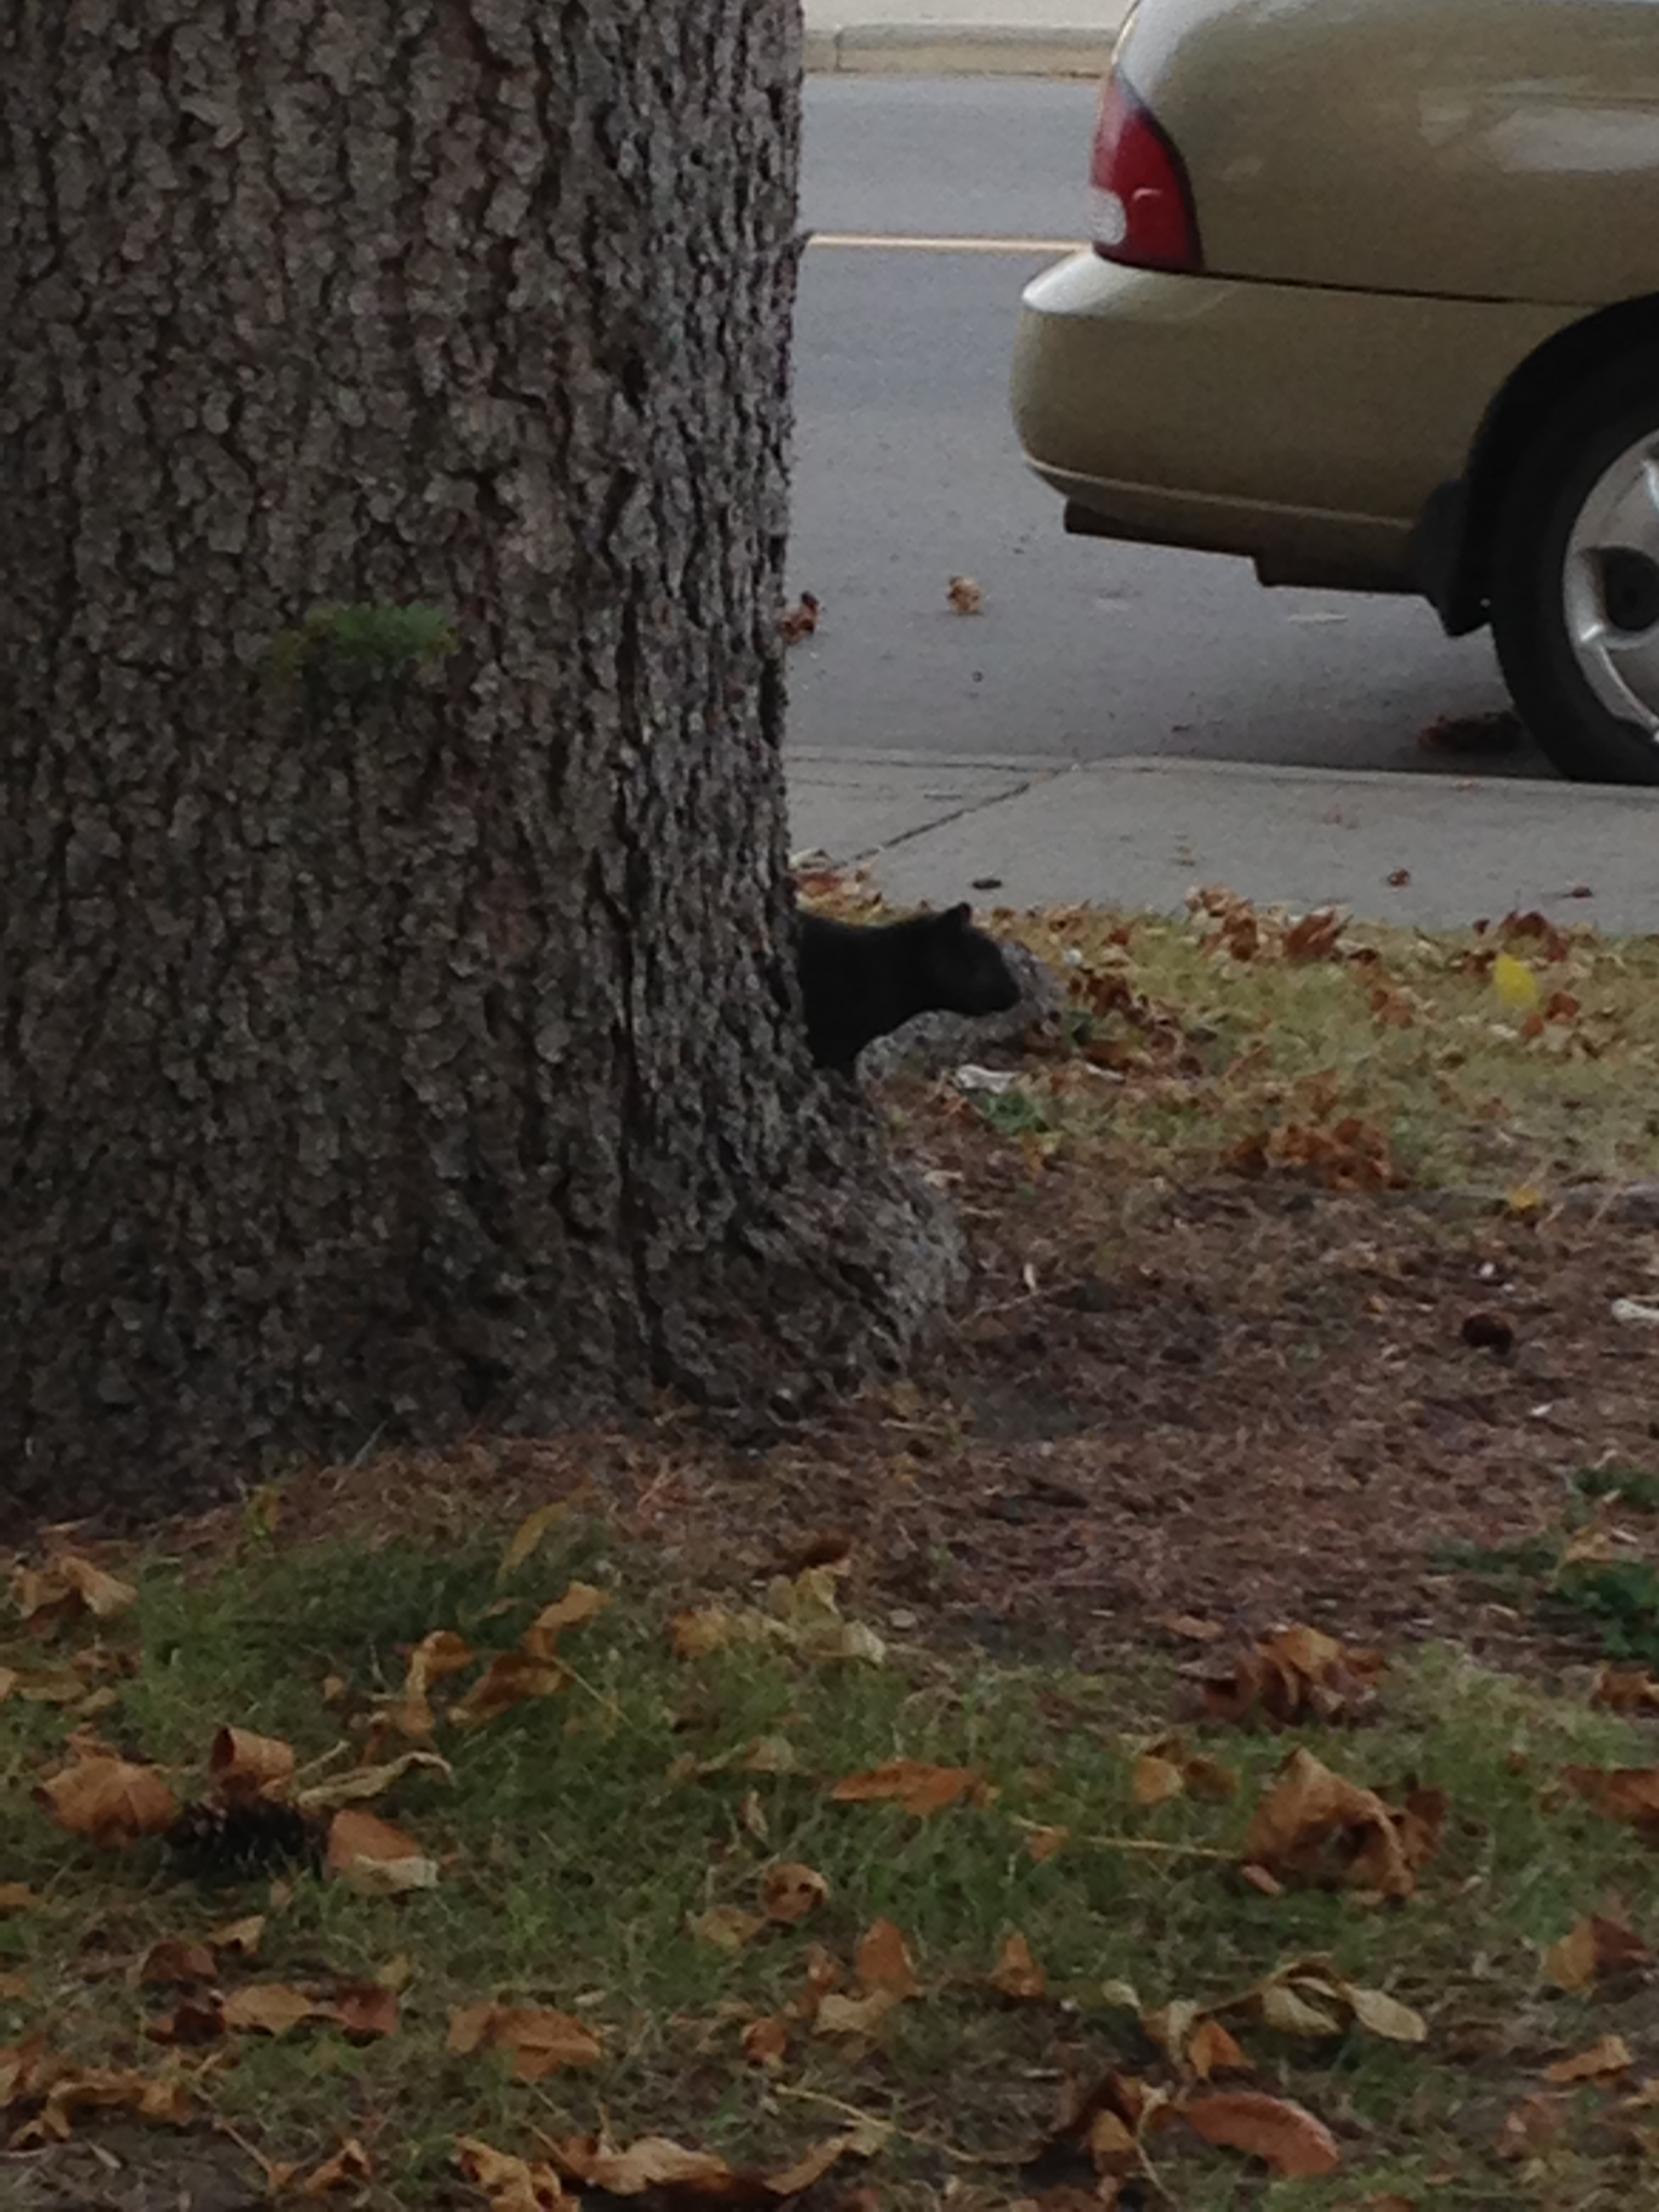 George the Curious and Intelligent Squirrel